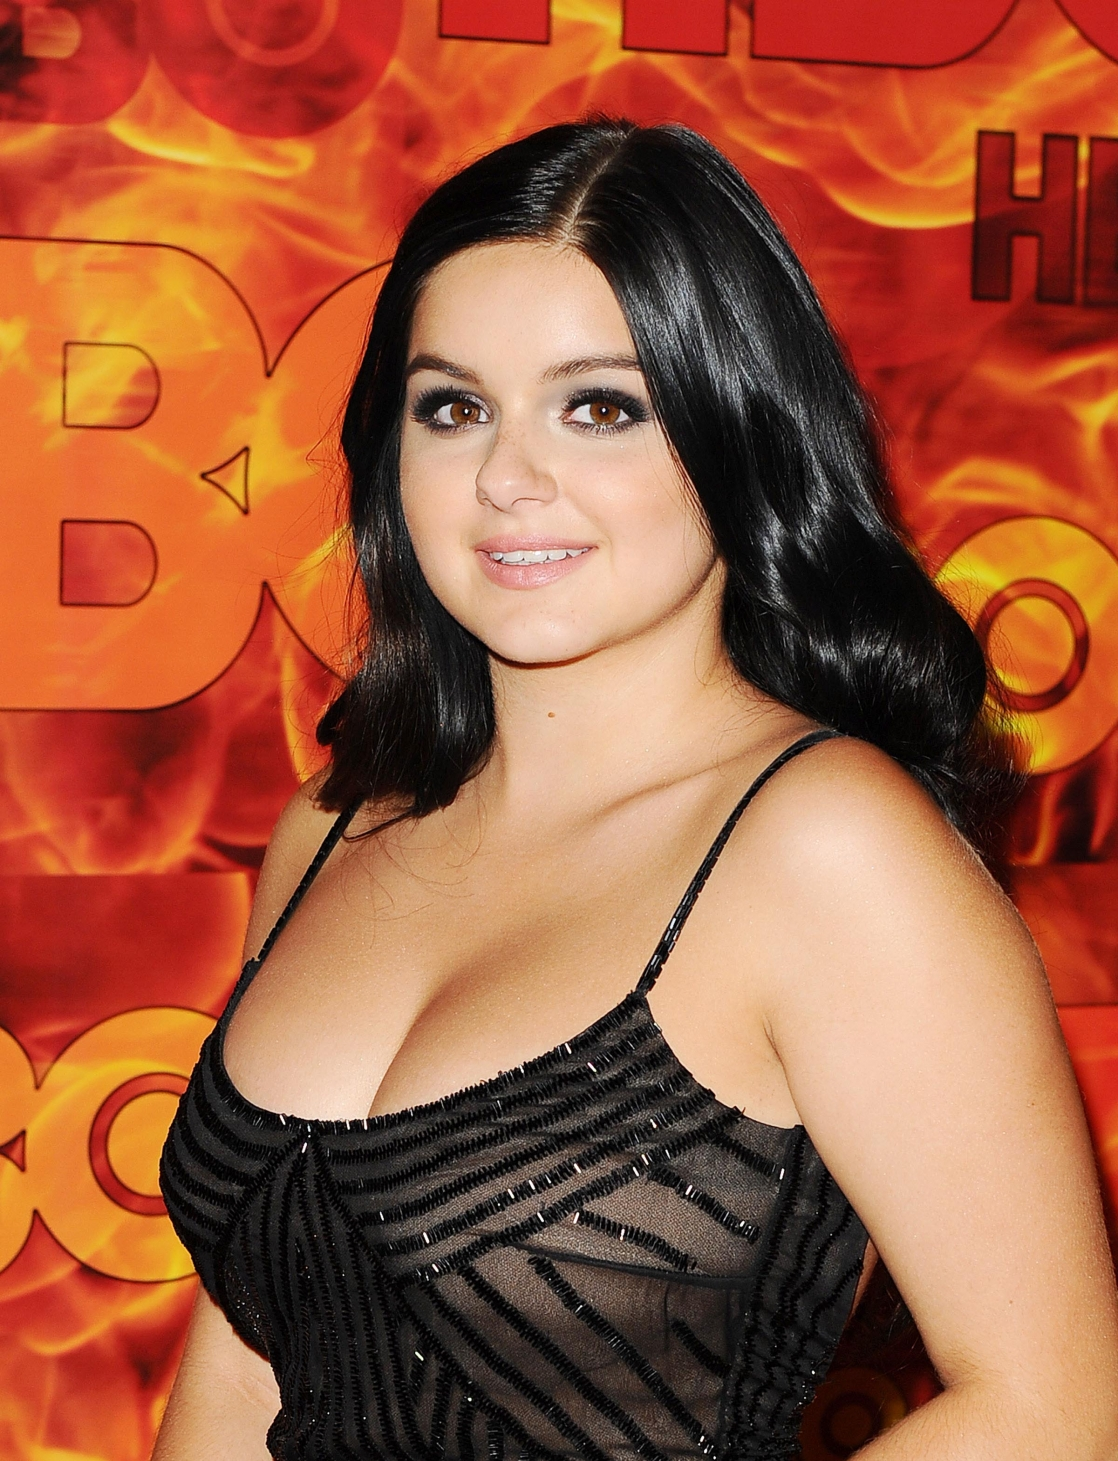 Sexy pictures of ariel winter